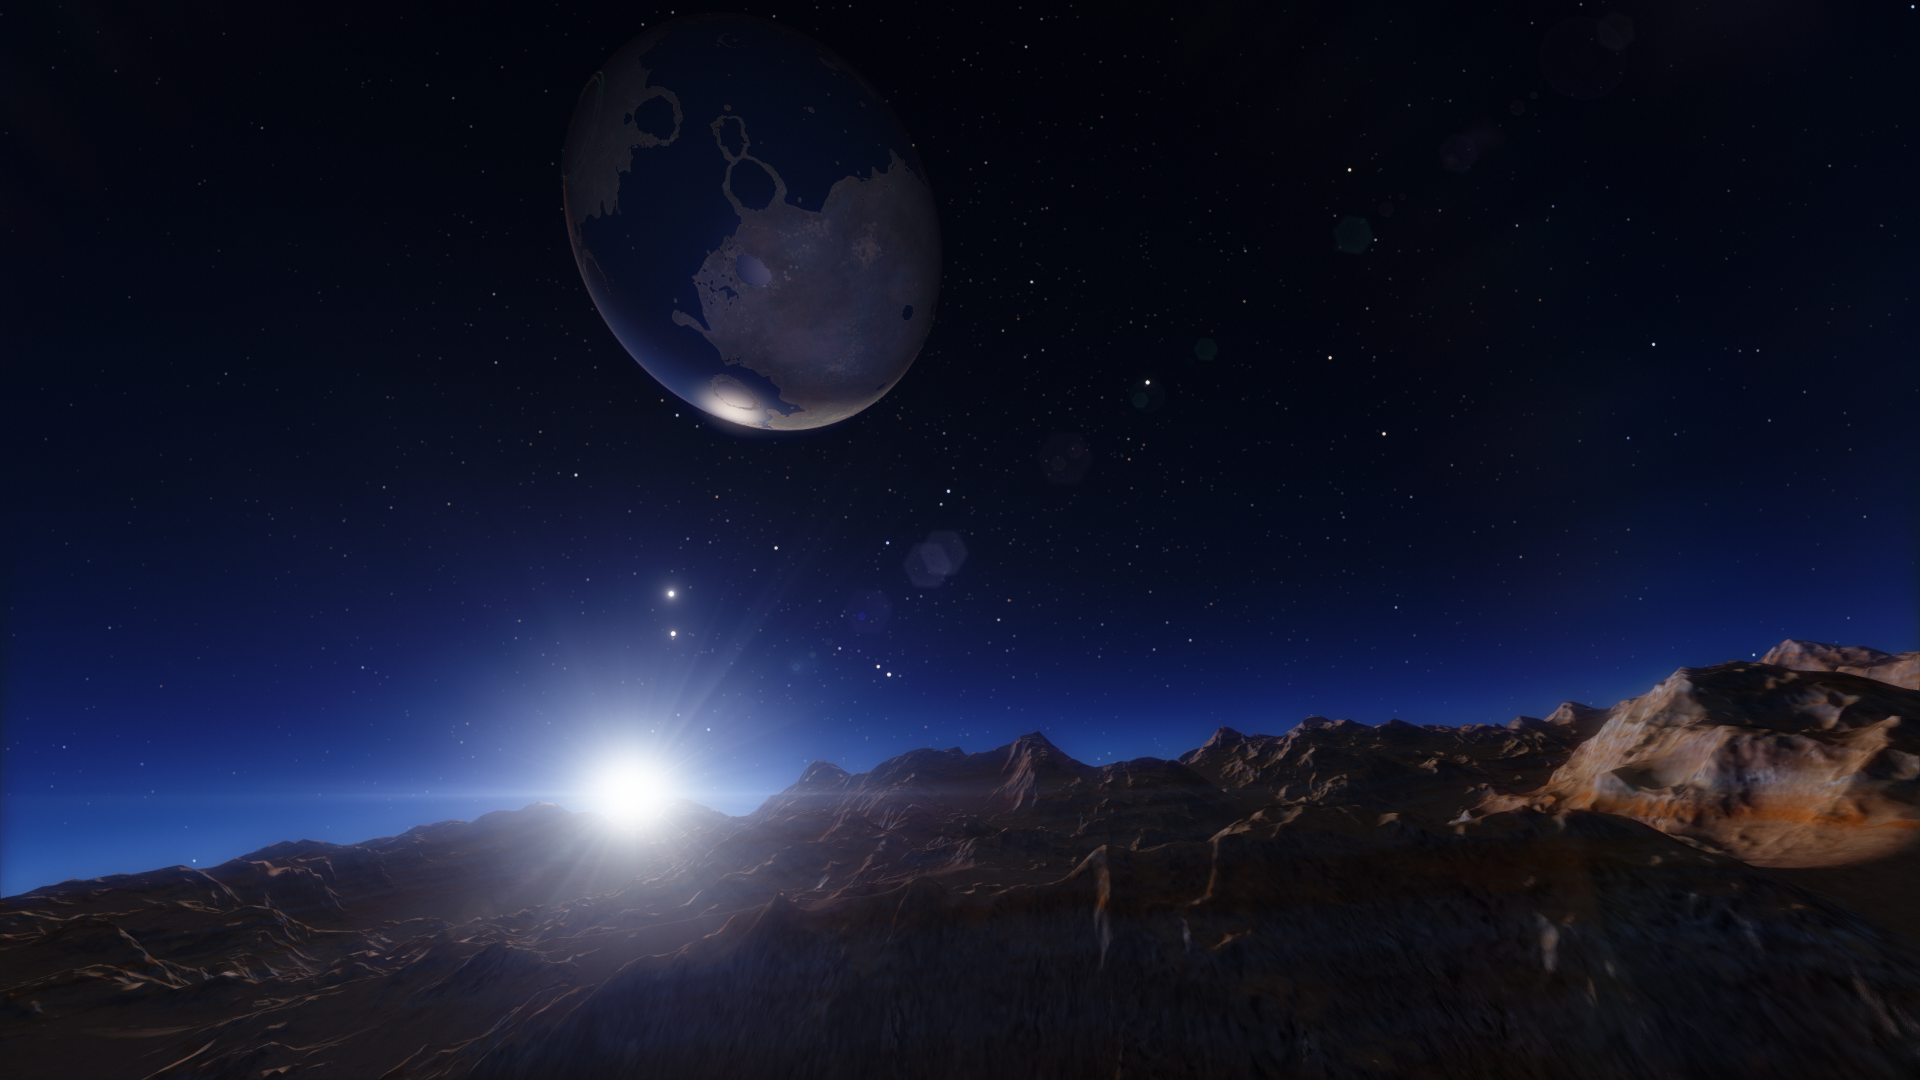 Space Engine Wallpapers Top Free Space Engine Backgrounds Wallpaperaccess